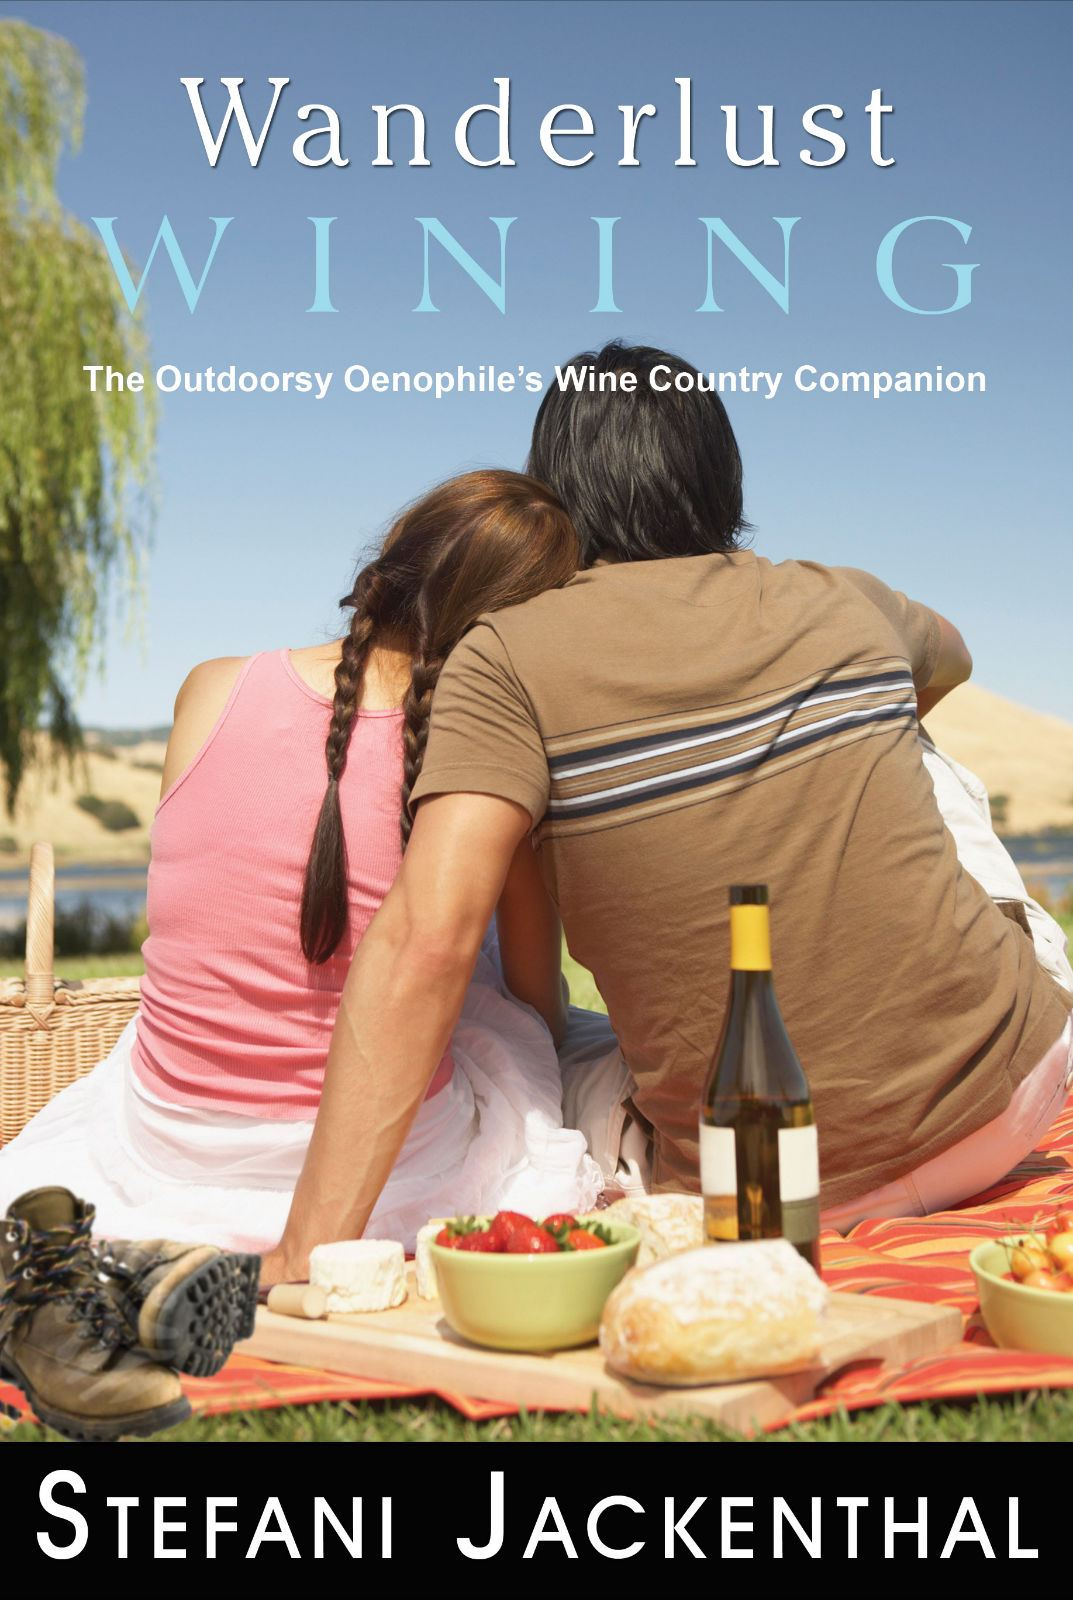 Wanderlust Wining: Wanderlust Wining The Outdoorsy Oenophiles Wine Country Companion